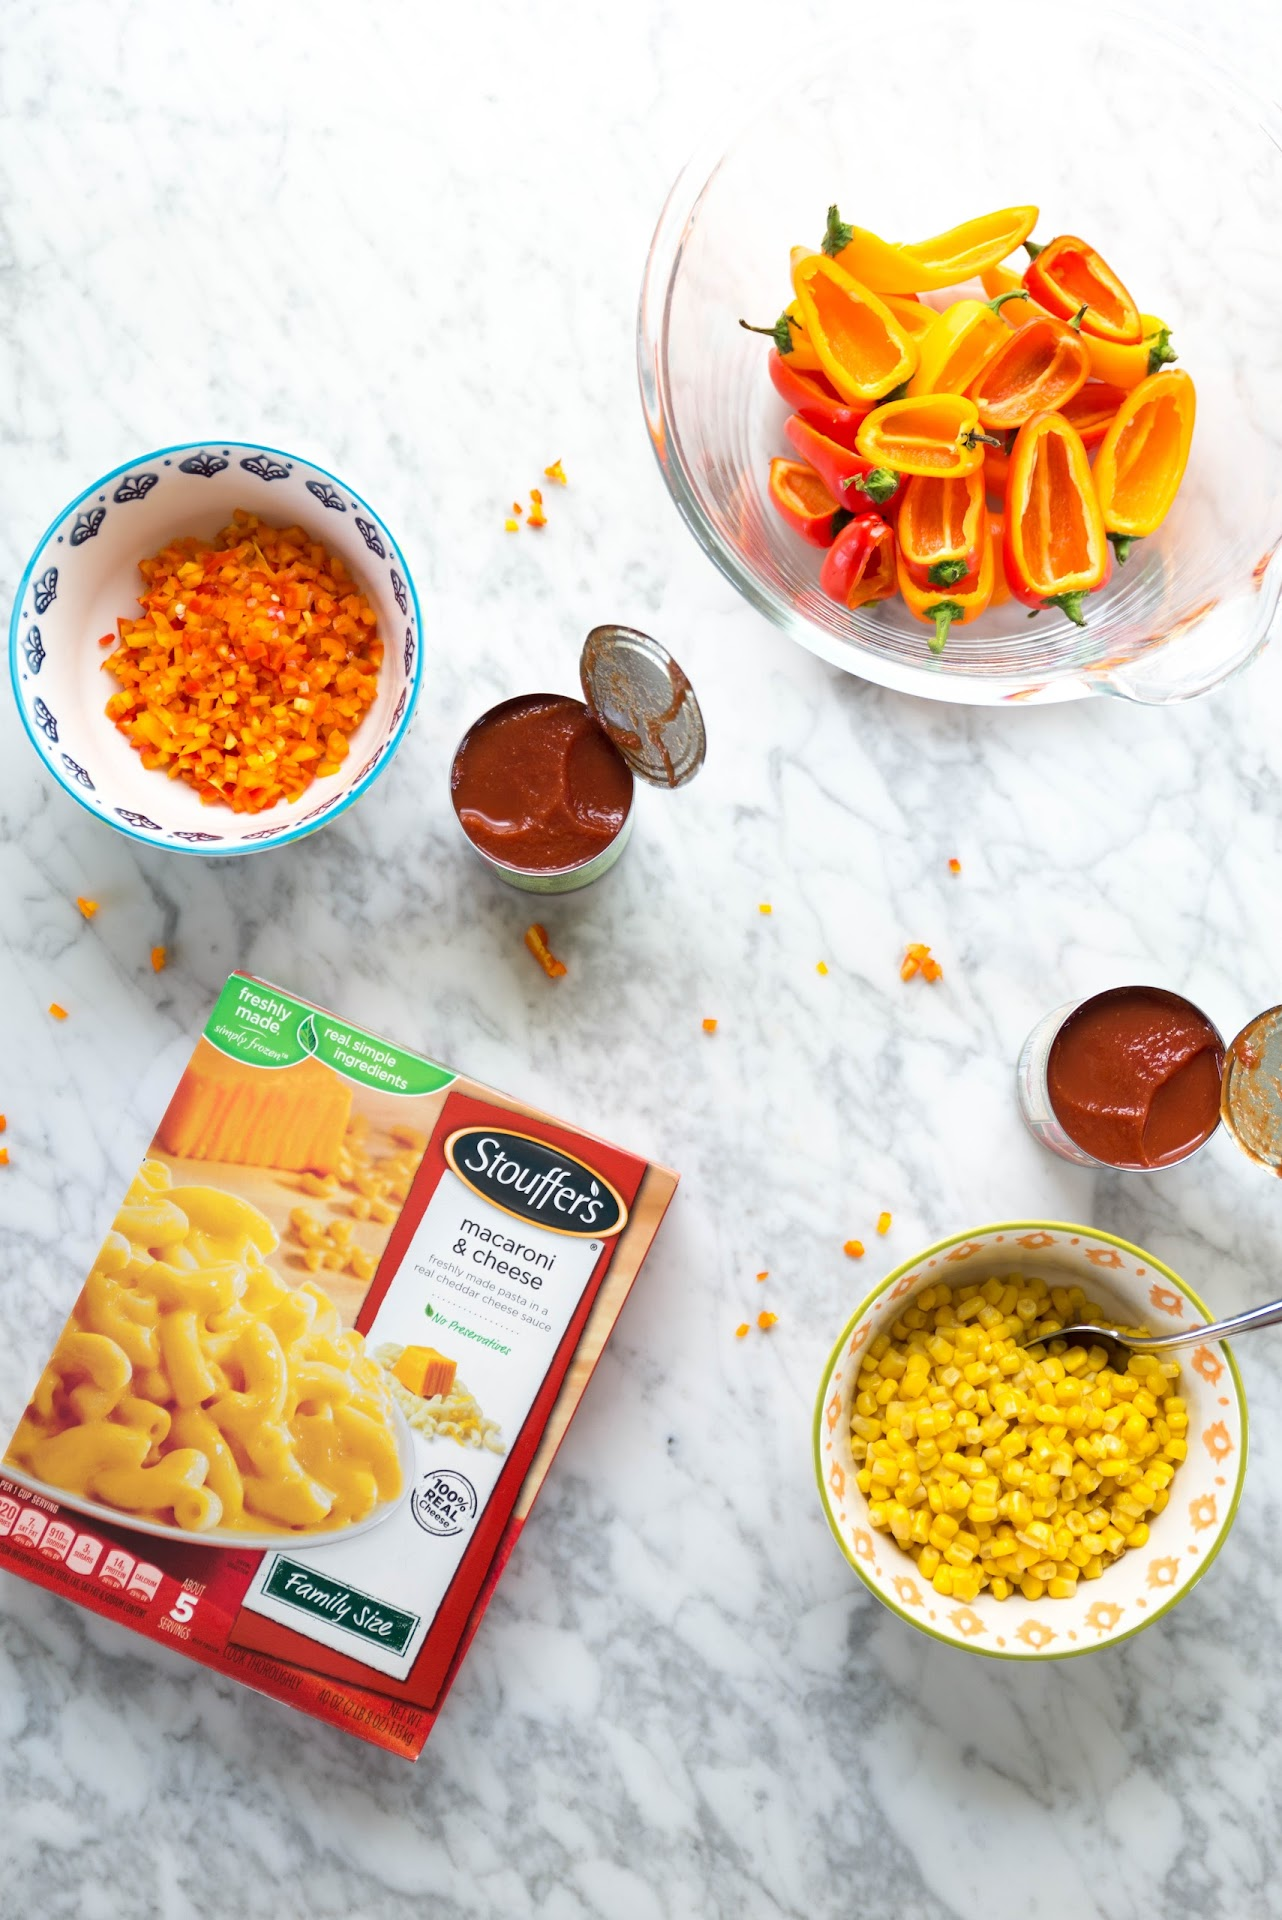 Stouffer's Family Size Macaroni & Cheese, easy dinner ideas, quick, semi homemade, prepared meals, best, meals kids love, family meals, dinner, lunch, weekday, weeknight dinner ideas, quick, easy, food blogger, lds, marble table, ingredients, photography, healthy stuffed peppers,